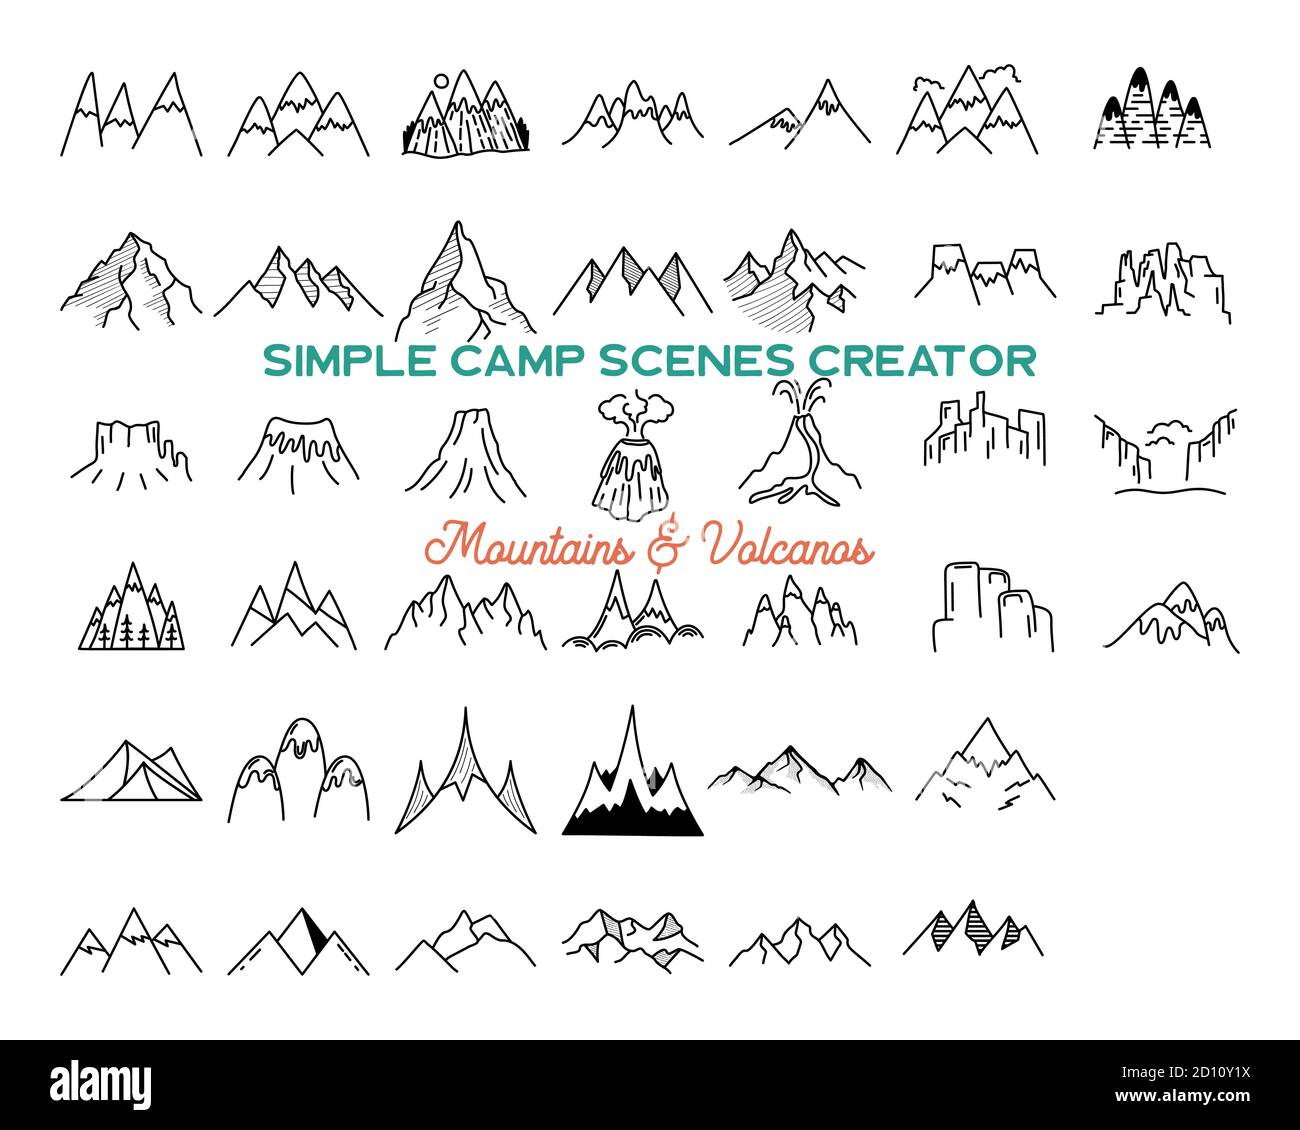 Simple vector mountains icons shapes set. Logo creation kit. Outdoor adventure line art mountain elements bundle. Silhouette linear concept. Stock Stock Vector